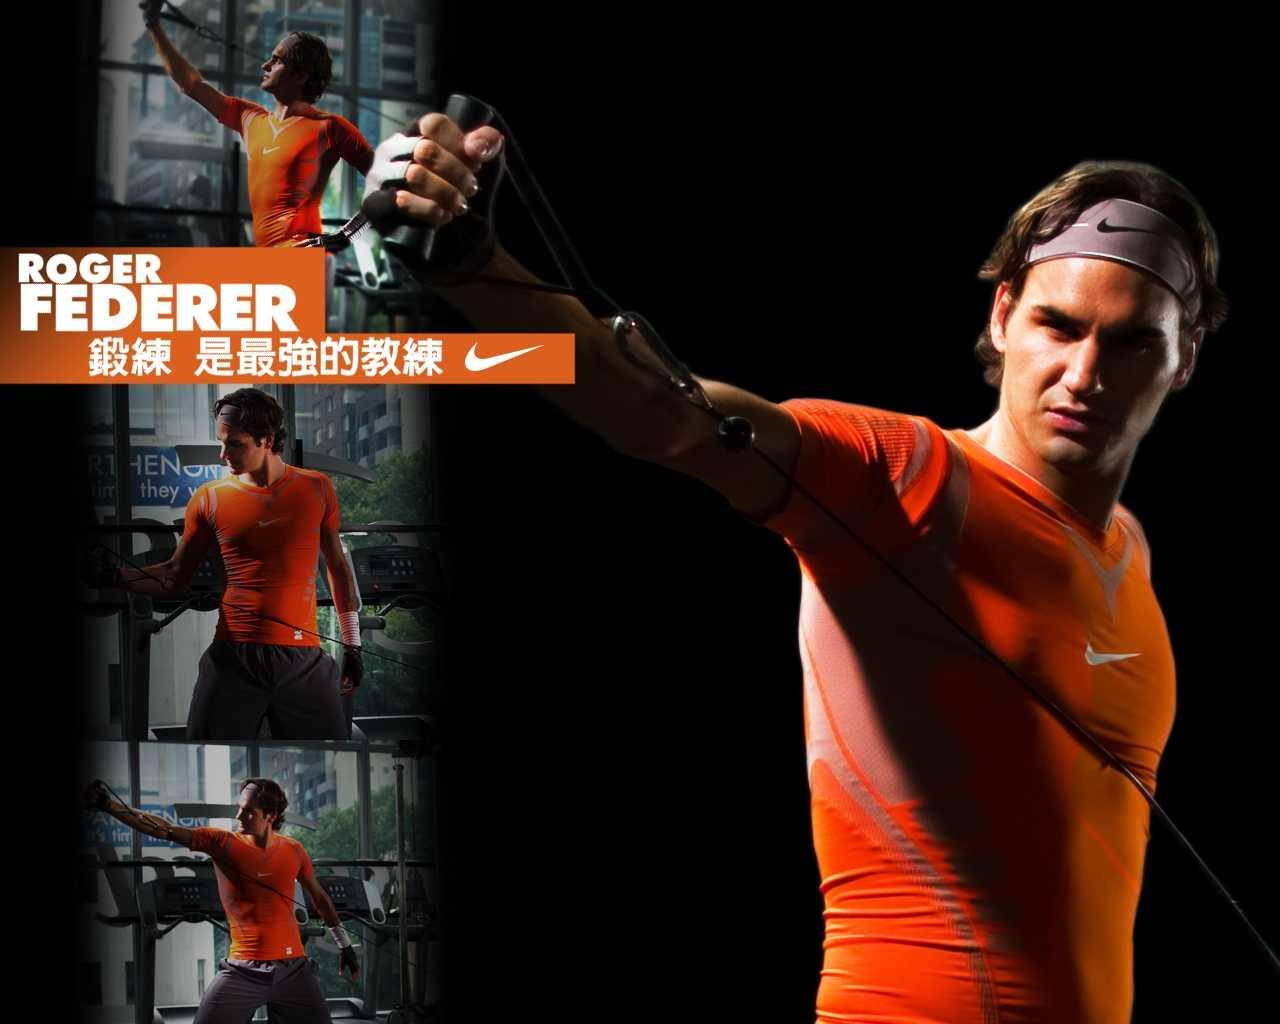 Roger Federer Hd: Roger Federer Latest HD Wallpaper 2013